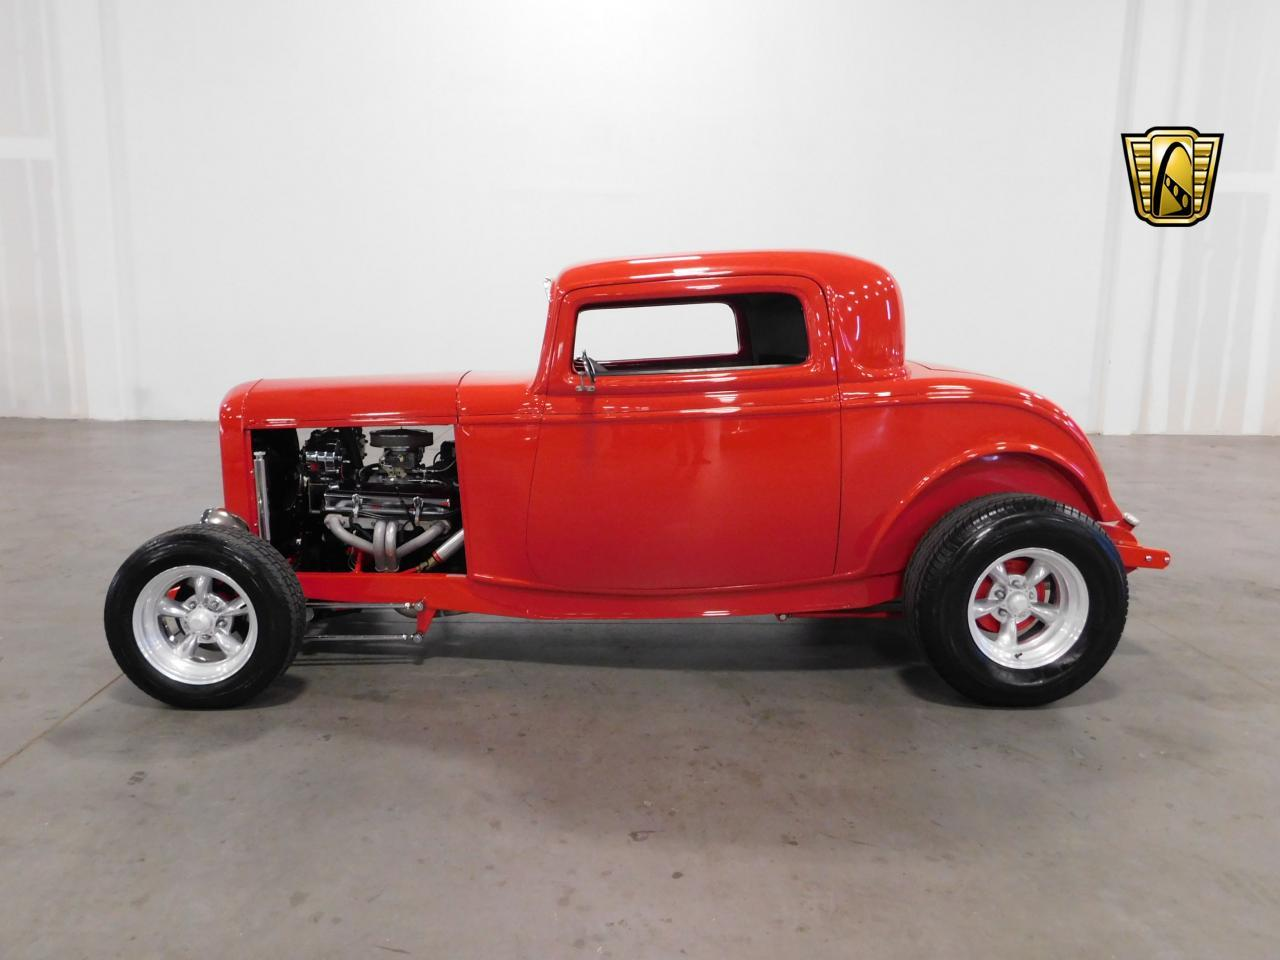 Large Picture of 1932 Ford 3-Window Coupe - $42,995.00 Offered by Gateway Classic Cars - Atlanta - MZFA